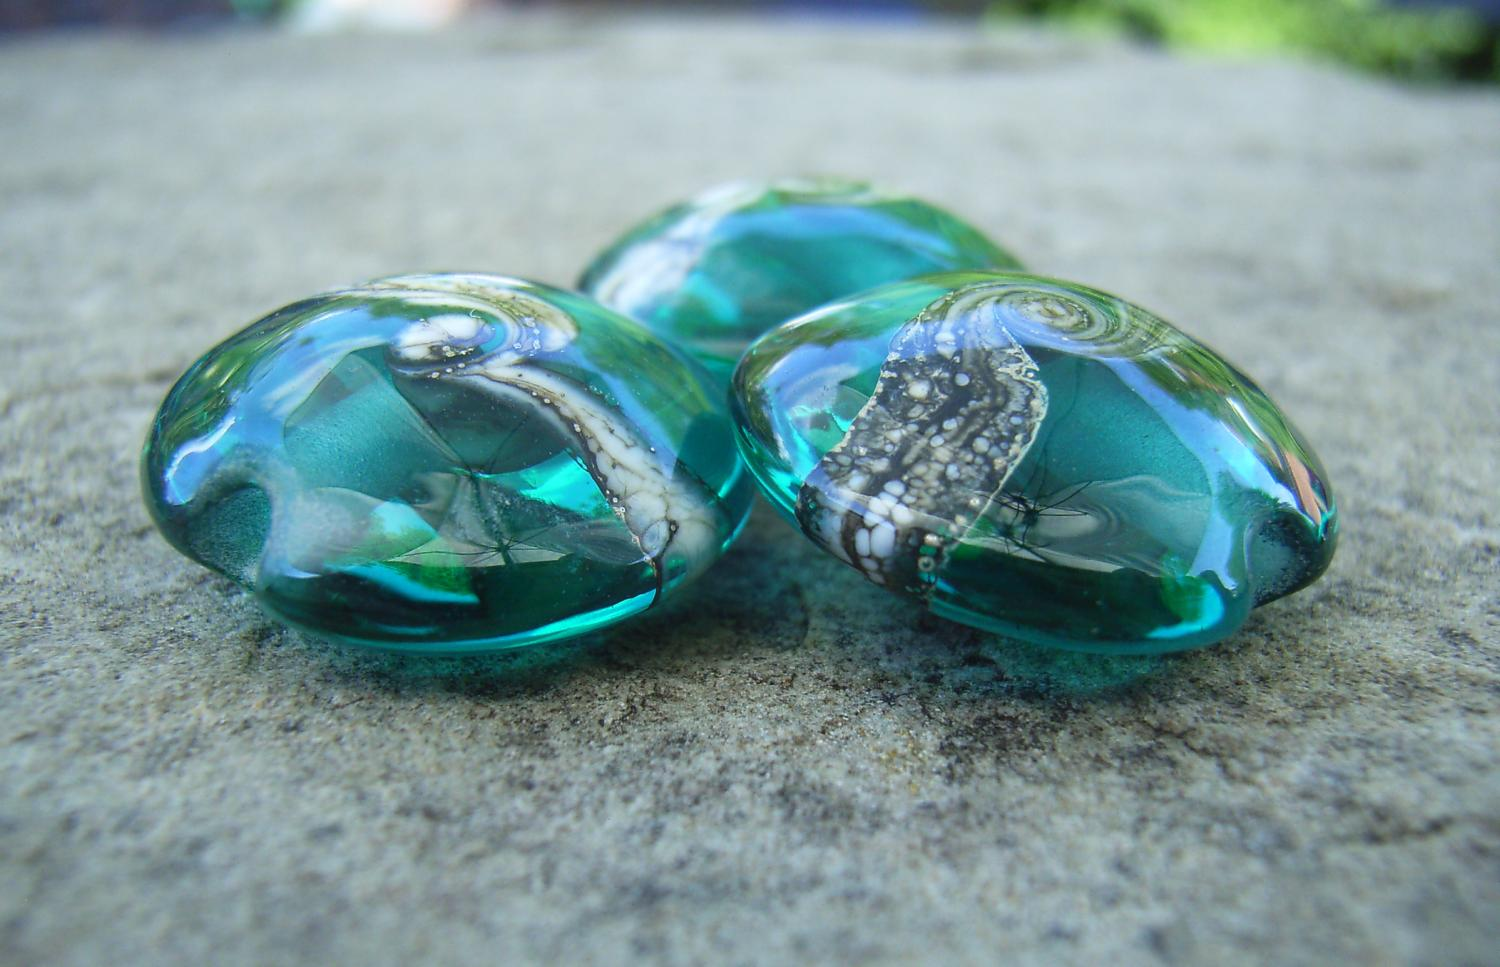 Silvered Ivory Swirl Teal 18mm Lentil Handmade Artisan Glass Lampwork Beads - By the Bead, (Made to Order) 2